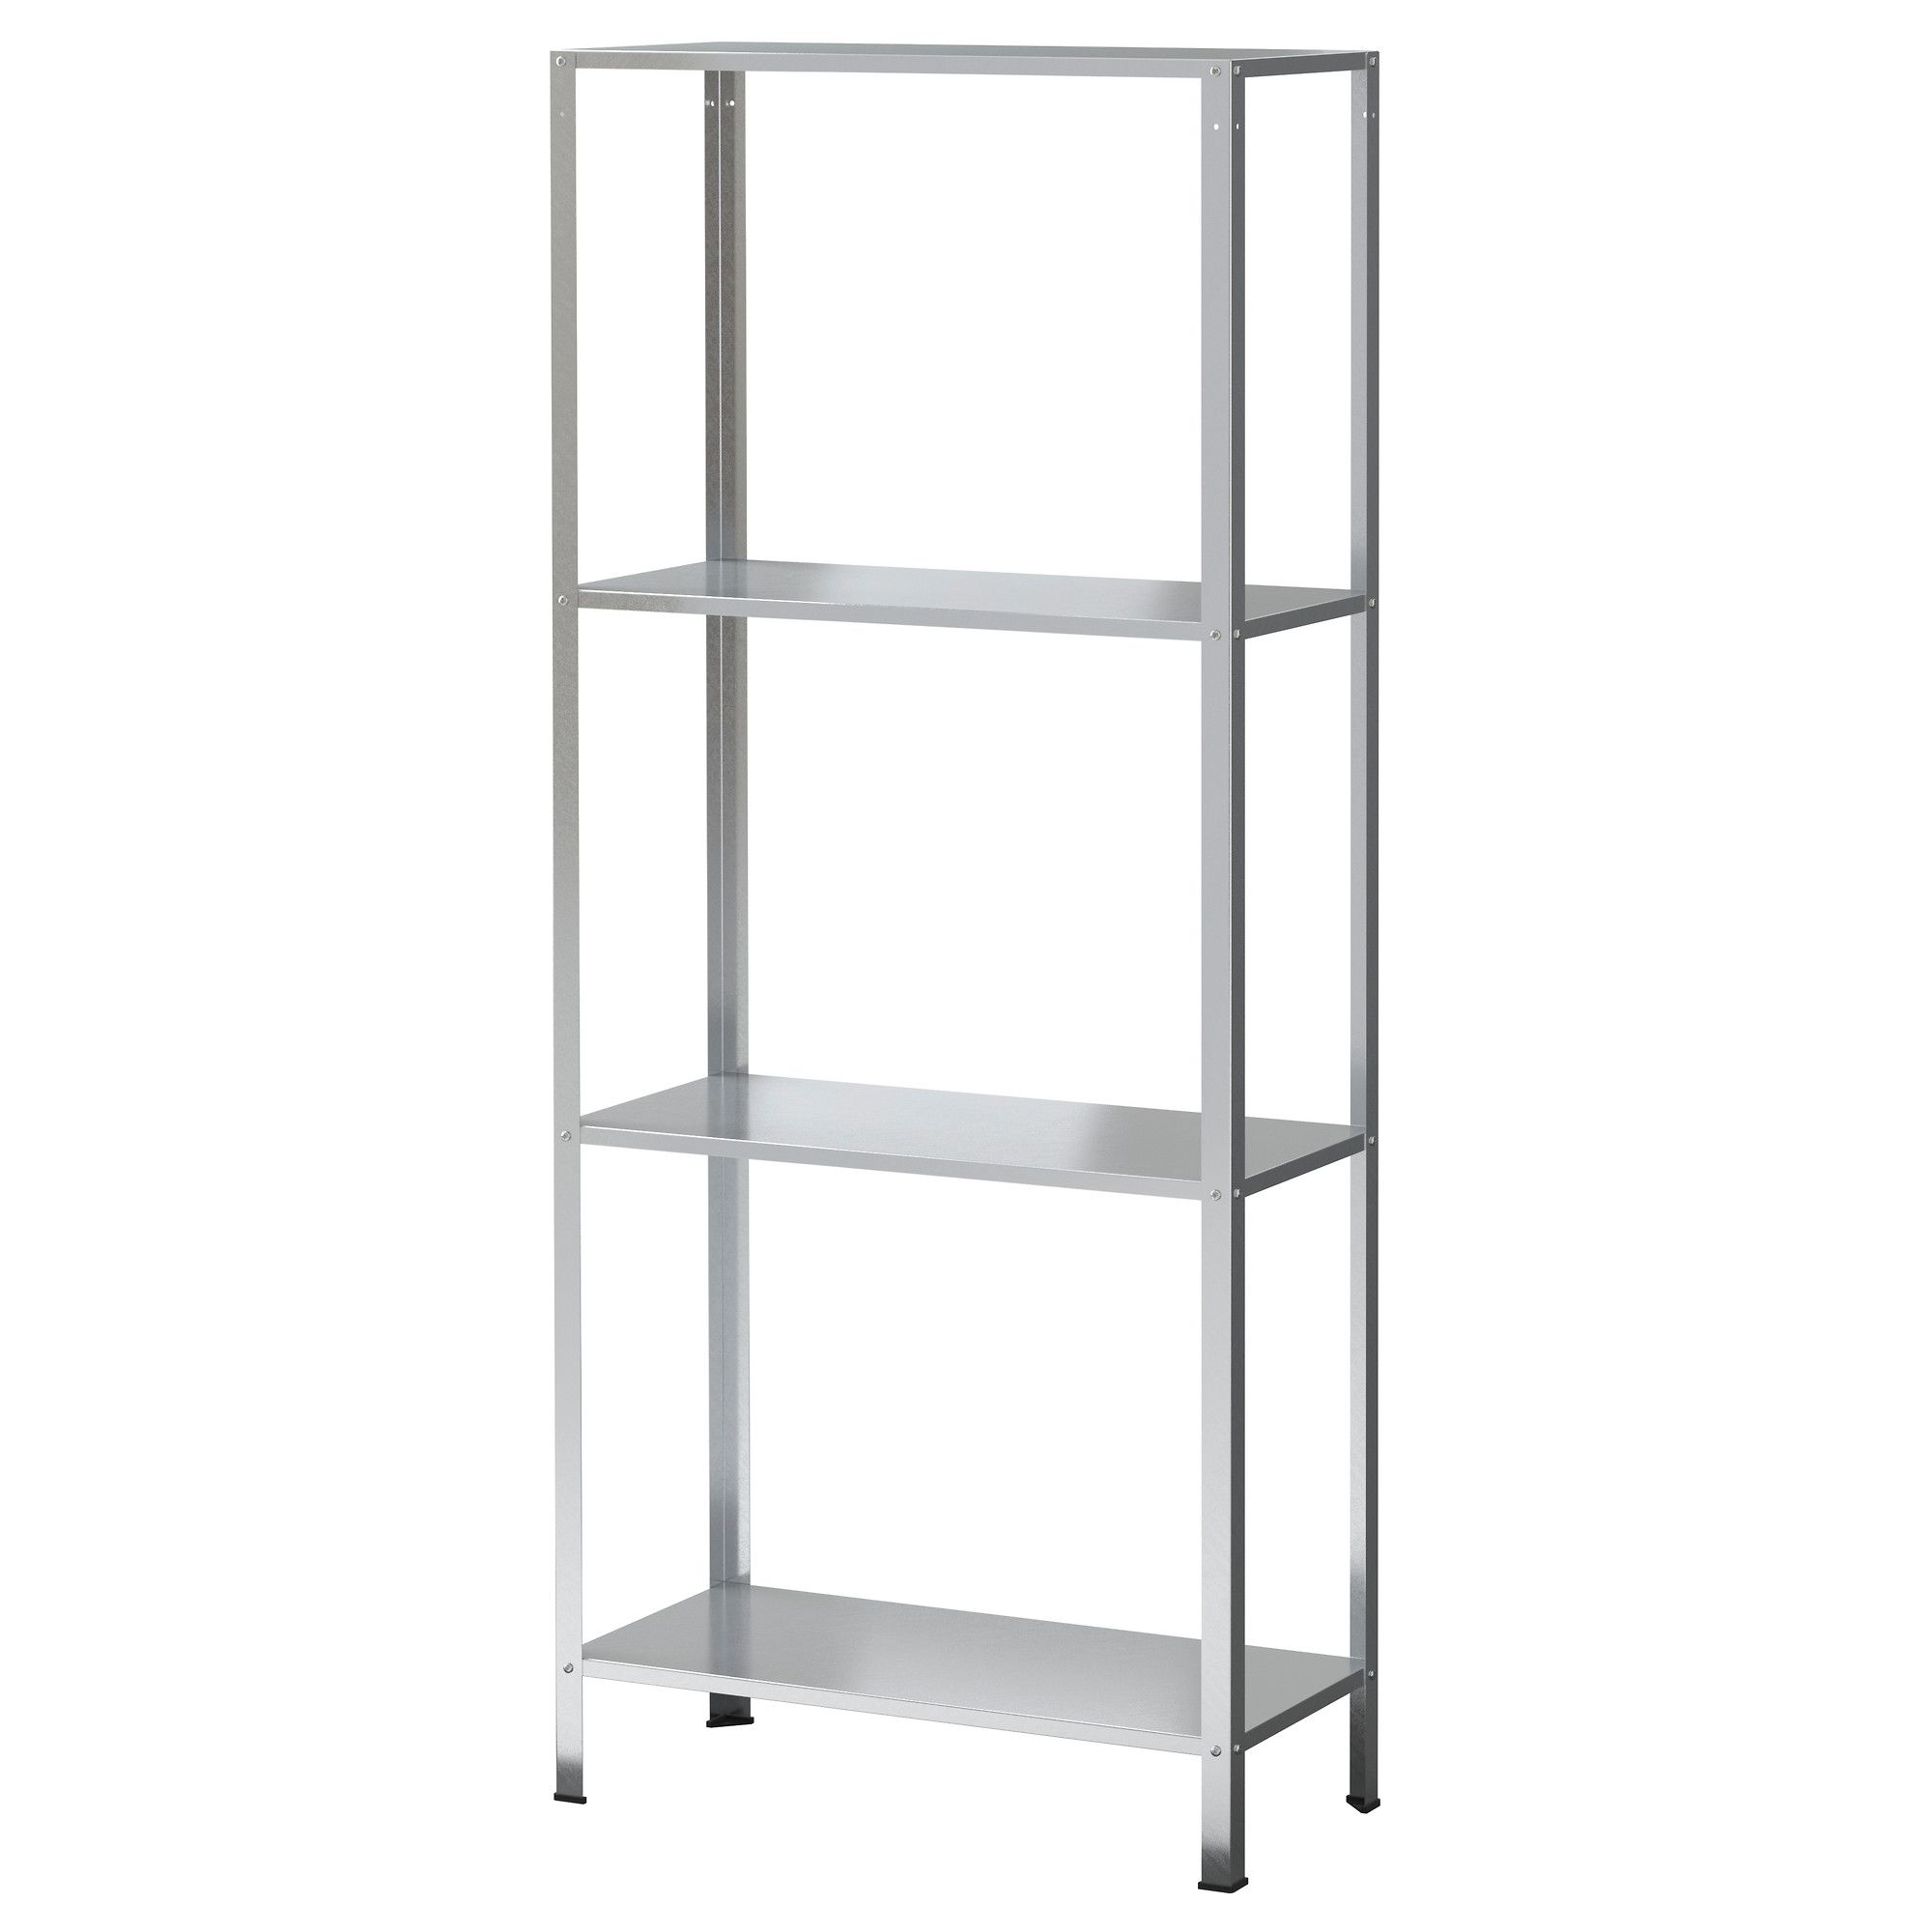 Glasregal Duisburg Ikea Hyllis Shelf Unit Things At Home Pinterest Regal